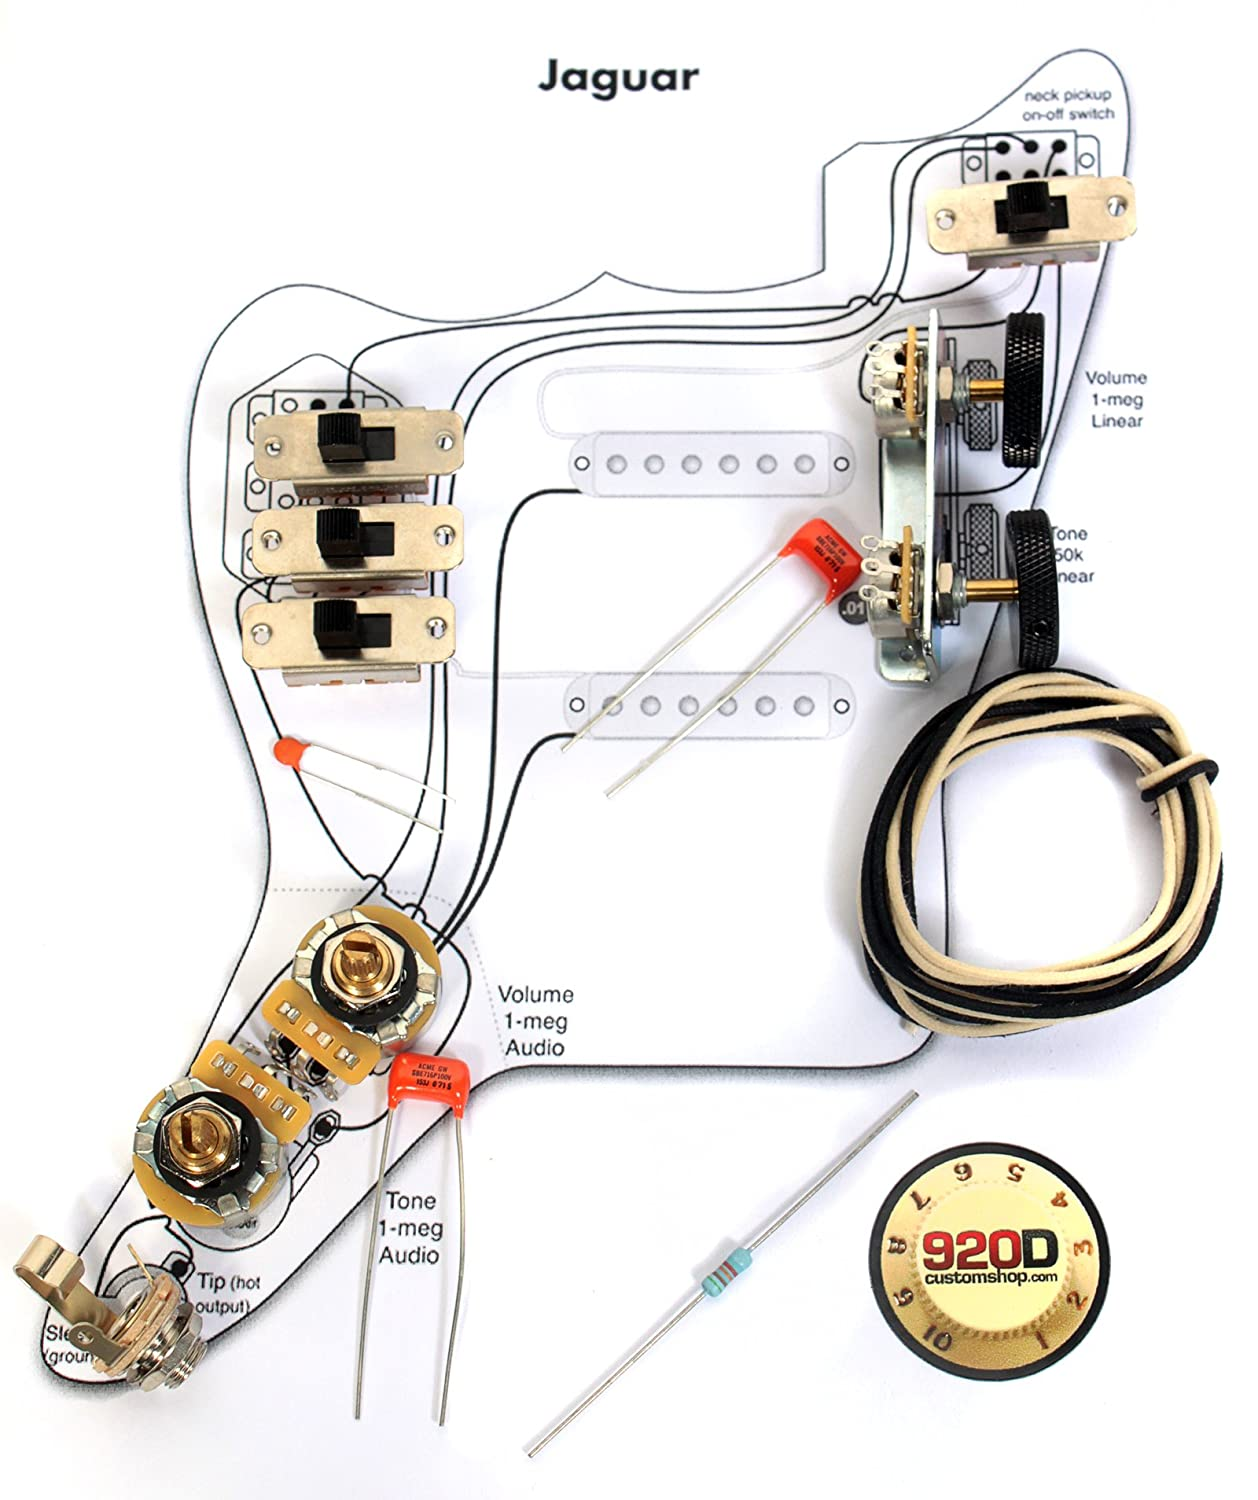 Fender Jaguar Pickup Wiring | Wiring Diagrams on kay guitar wiring diagram, epiphone les paul wiring diagram, gibson explorer wiring diagram, ibanez bass wiring diagram, gibson sg wiring diagram, gibson les paul standard wiring diagram, esp ltd wiring diagram,